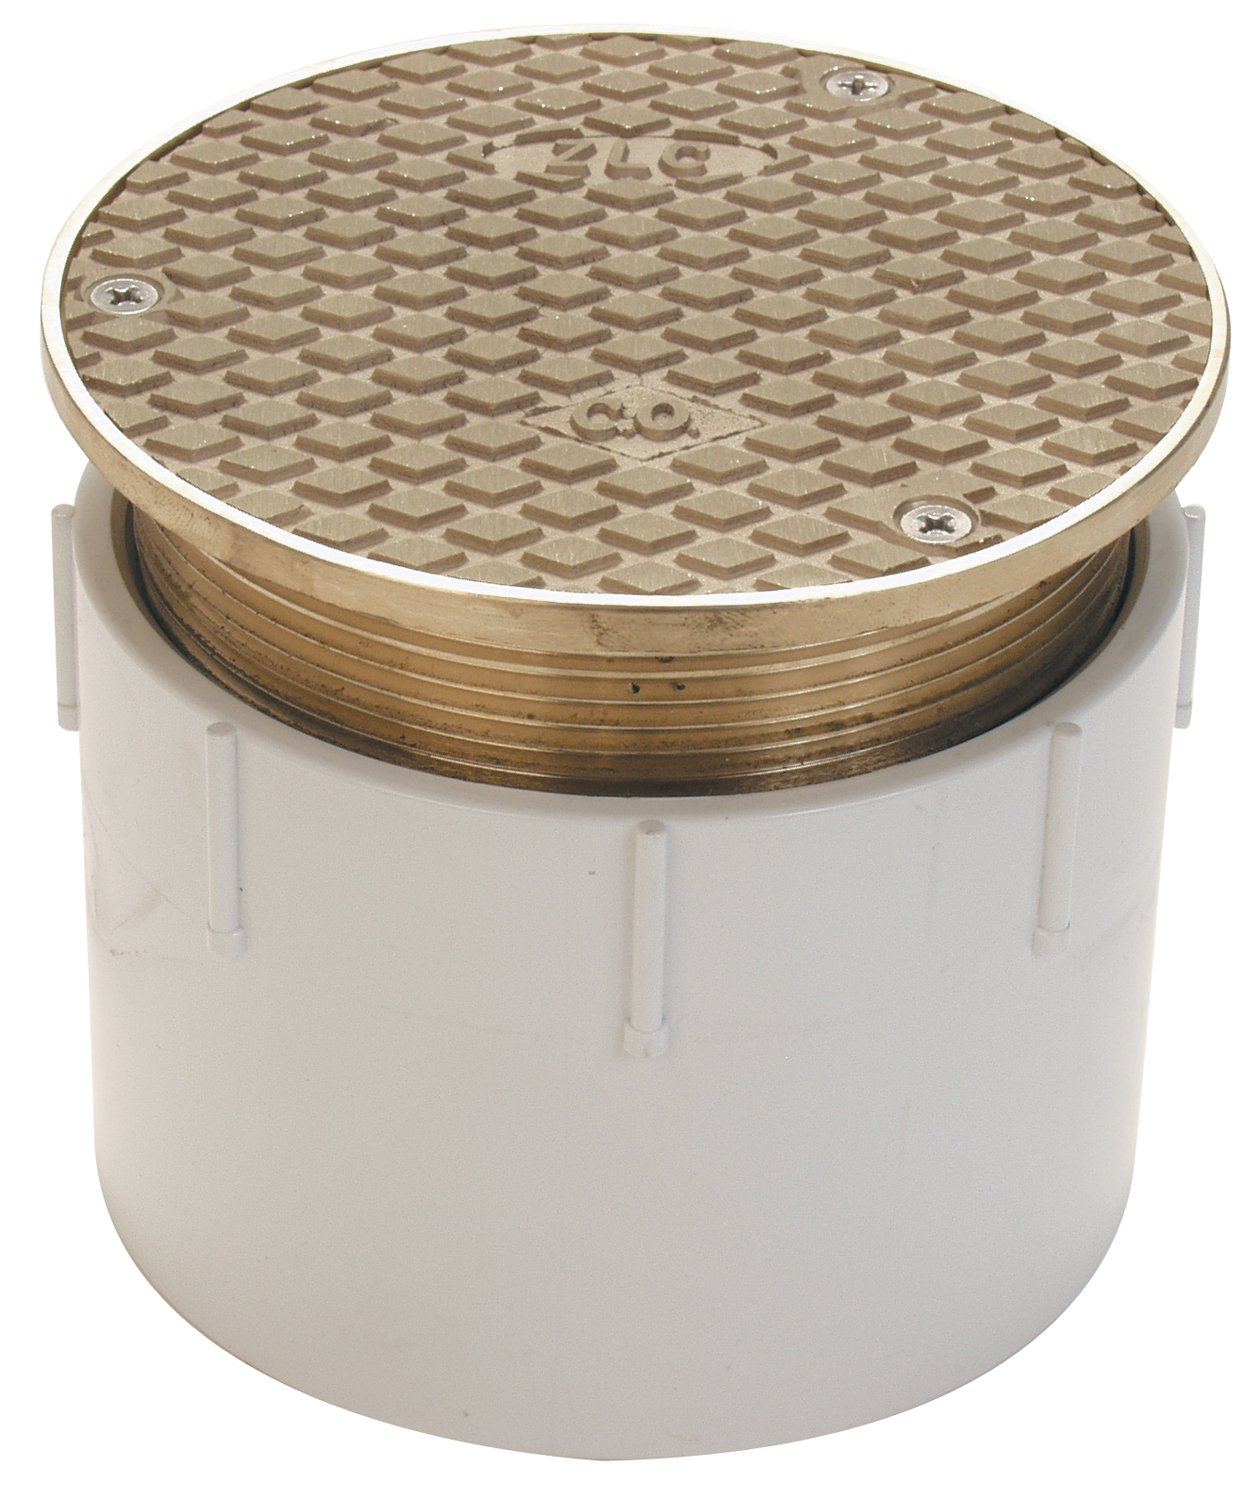 Zurn CO2450-PV4, Adjustable Floor Cleanout, 4 Inch PVC Hub Connection , Brass